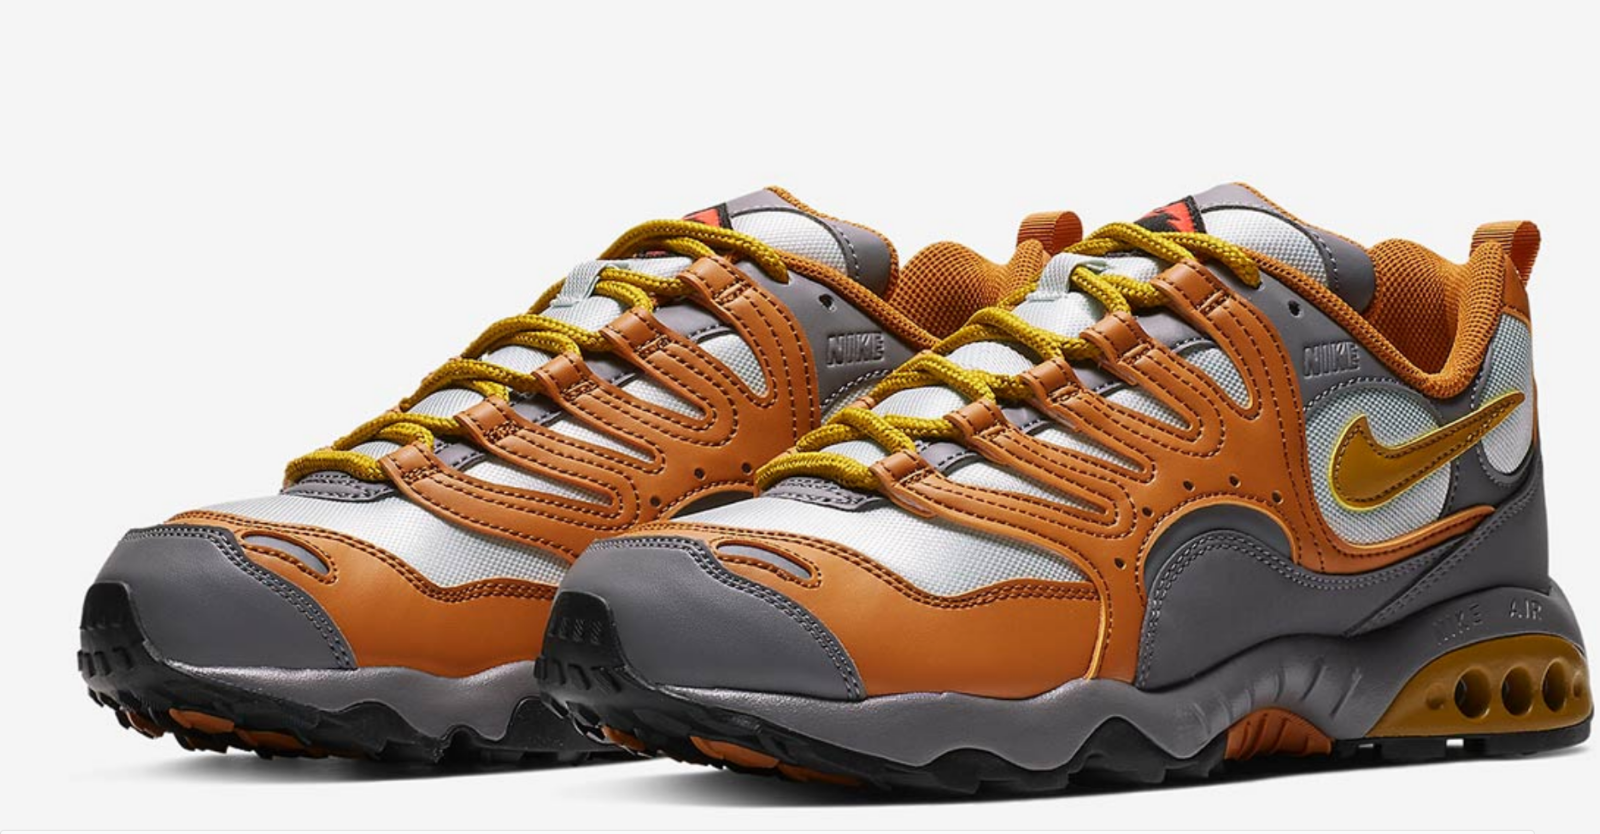 Nike Air Max Terra  Humara Mens Dimensione 11.5 (Trail  Running  Hiking)(Vend Out Style)  centro commerciale online integrato professionale